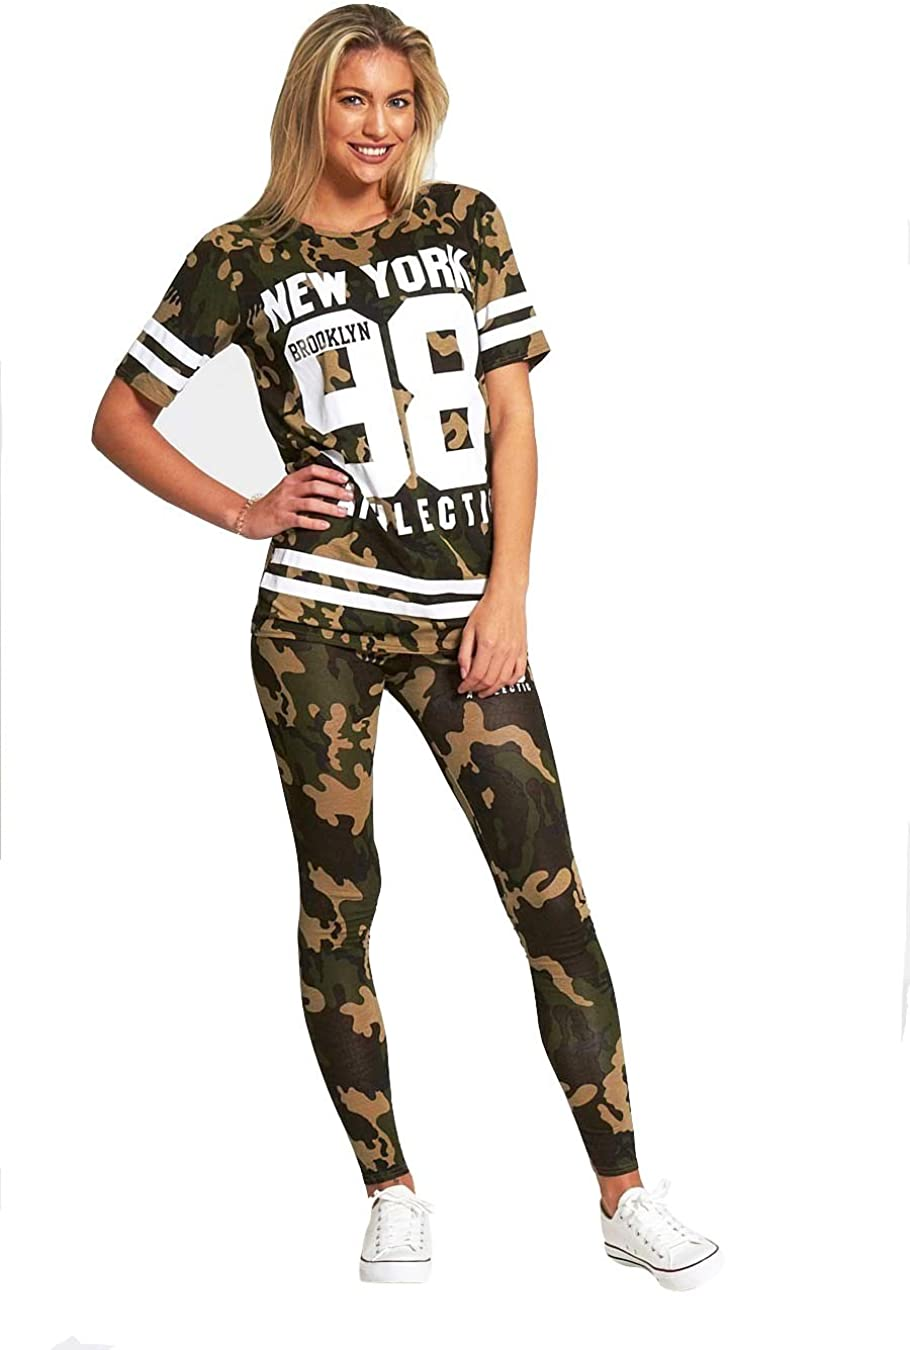 Girls Army Tracksuit Camo Camouflage New York 98 Kids Top /& Leggings Loungewear